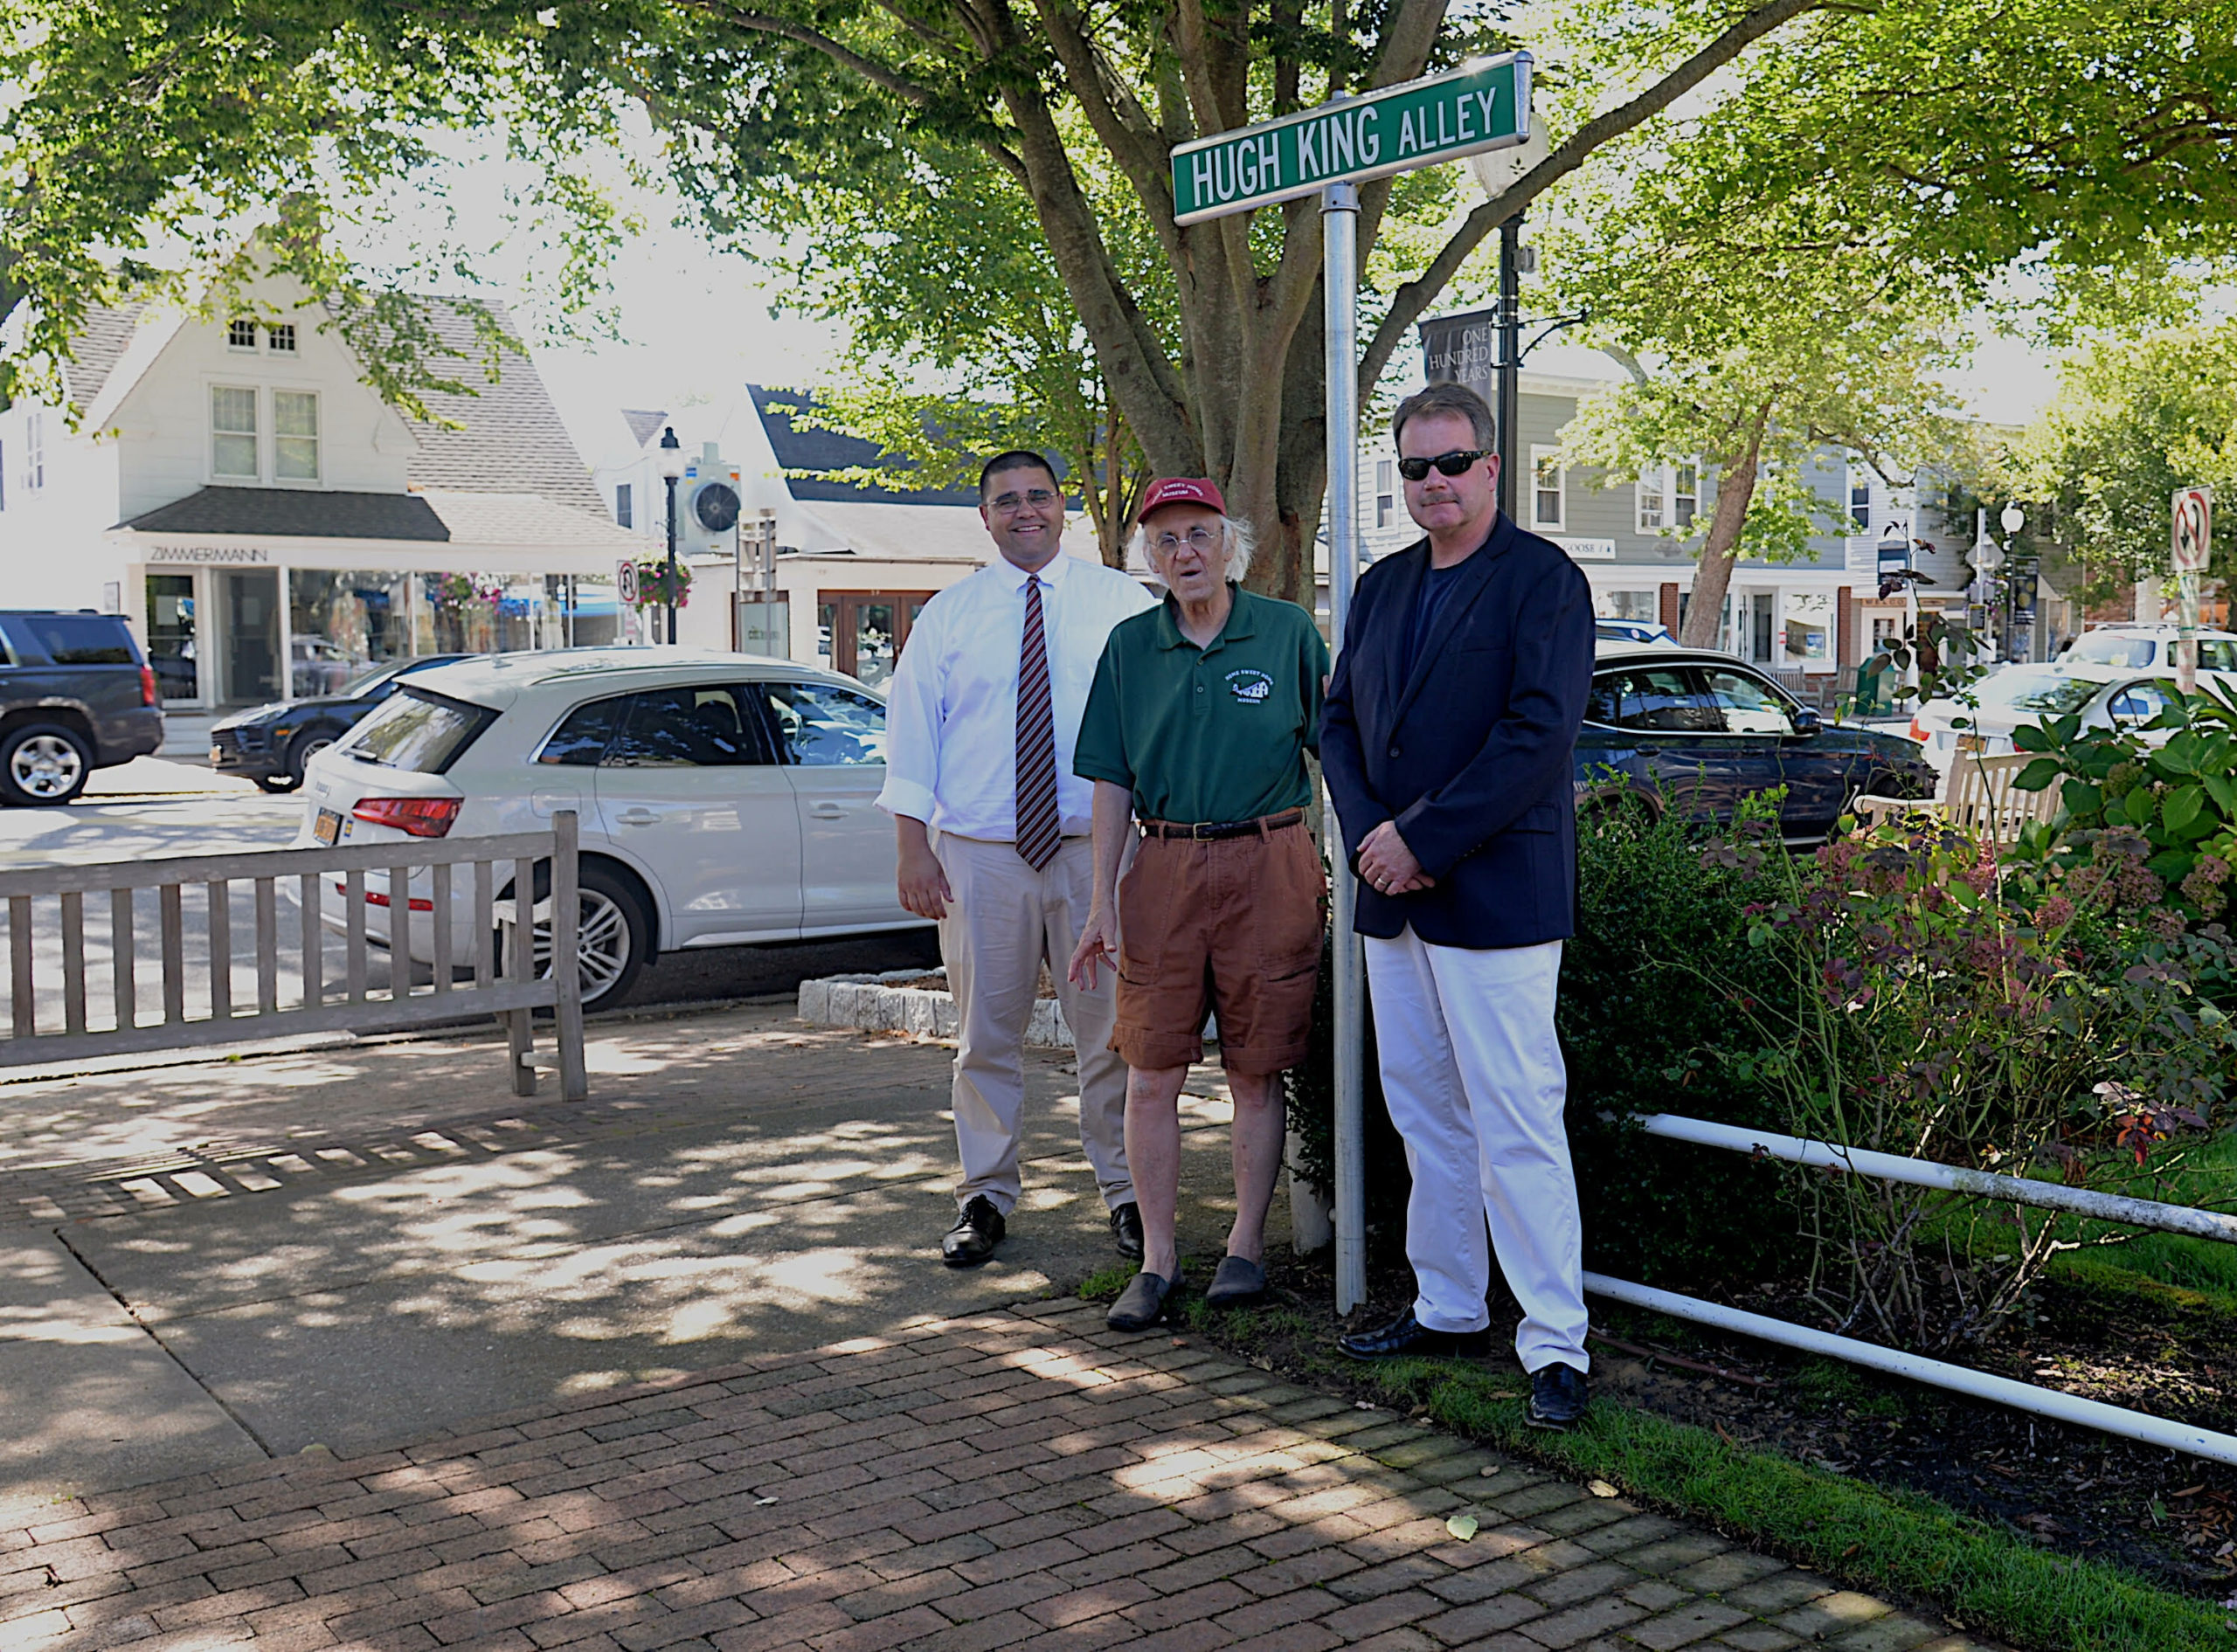 Town Crier and historian Hugh King, with East Hampton Village Mayor Jerry Larsen and Village Administrator Marcos Baladron, was honored with the dedication of the alley between Newtown Lane and the Schenck parking lot in his name this week, ahead of the village's centennial celebrations.